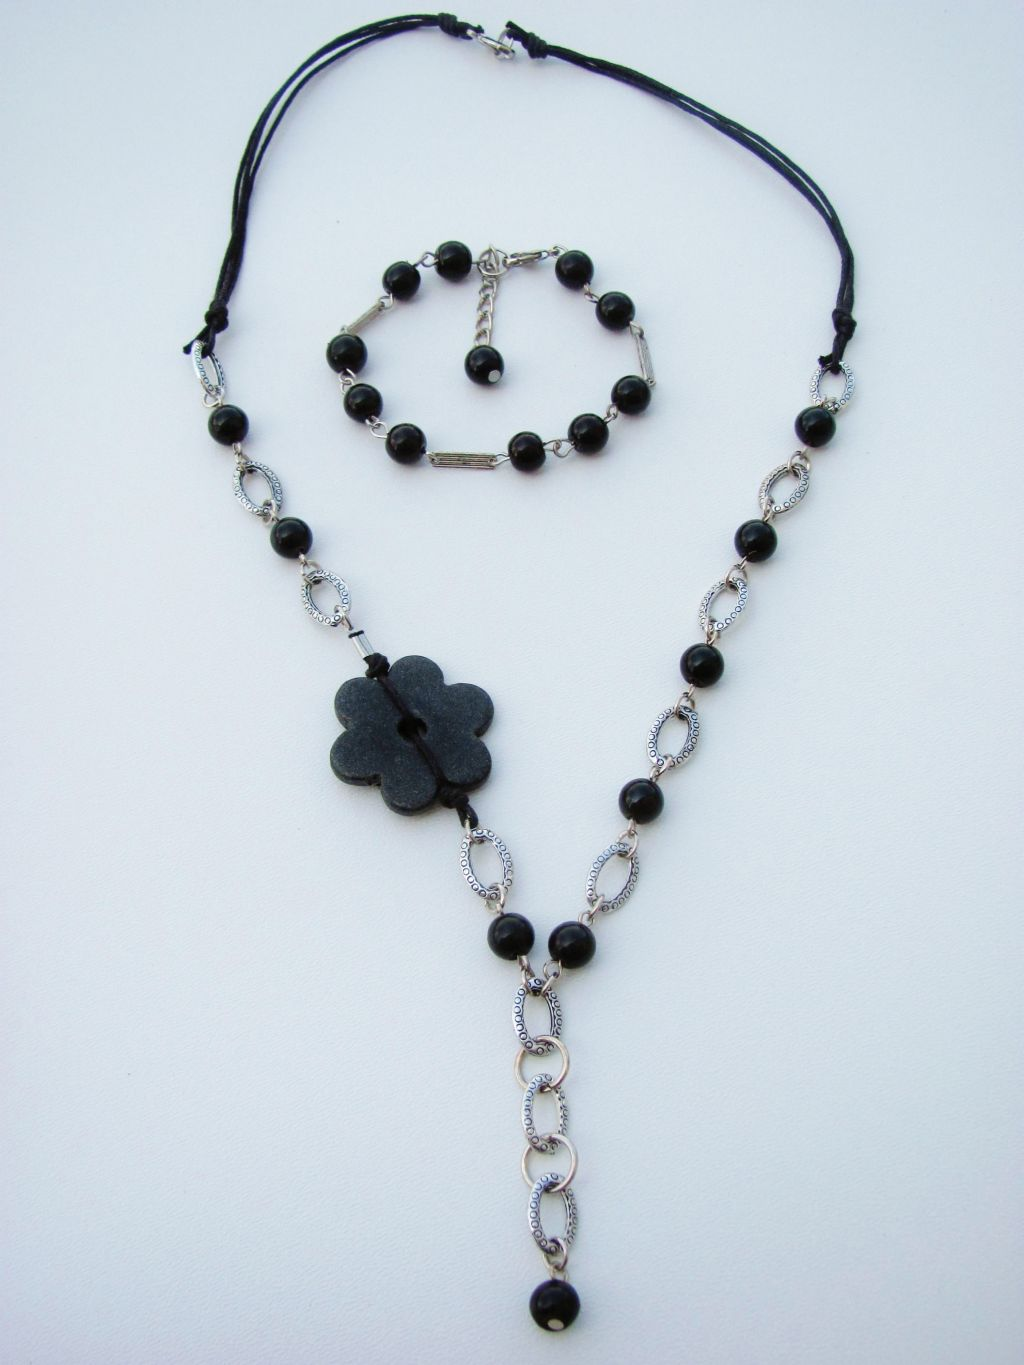 Black Pearl Beads Flower Chain Necklace Bracelet Set